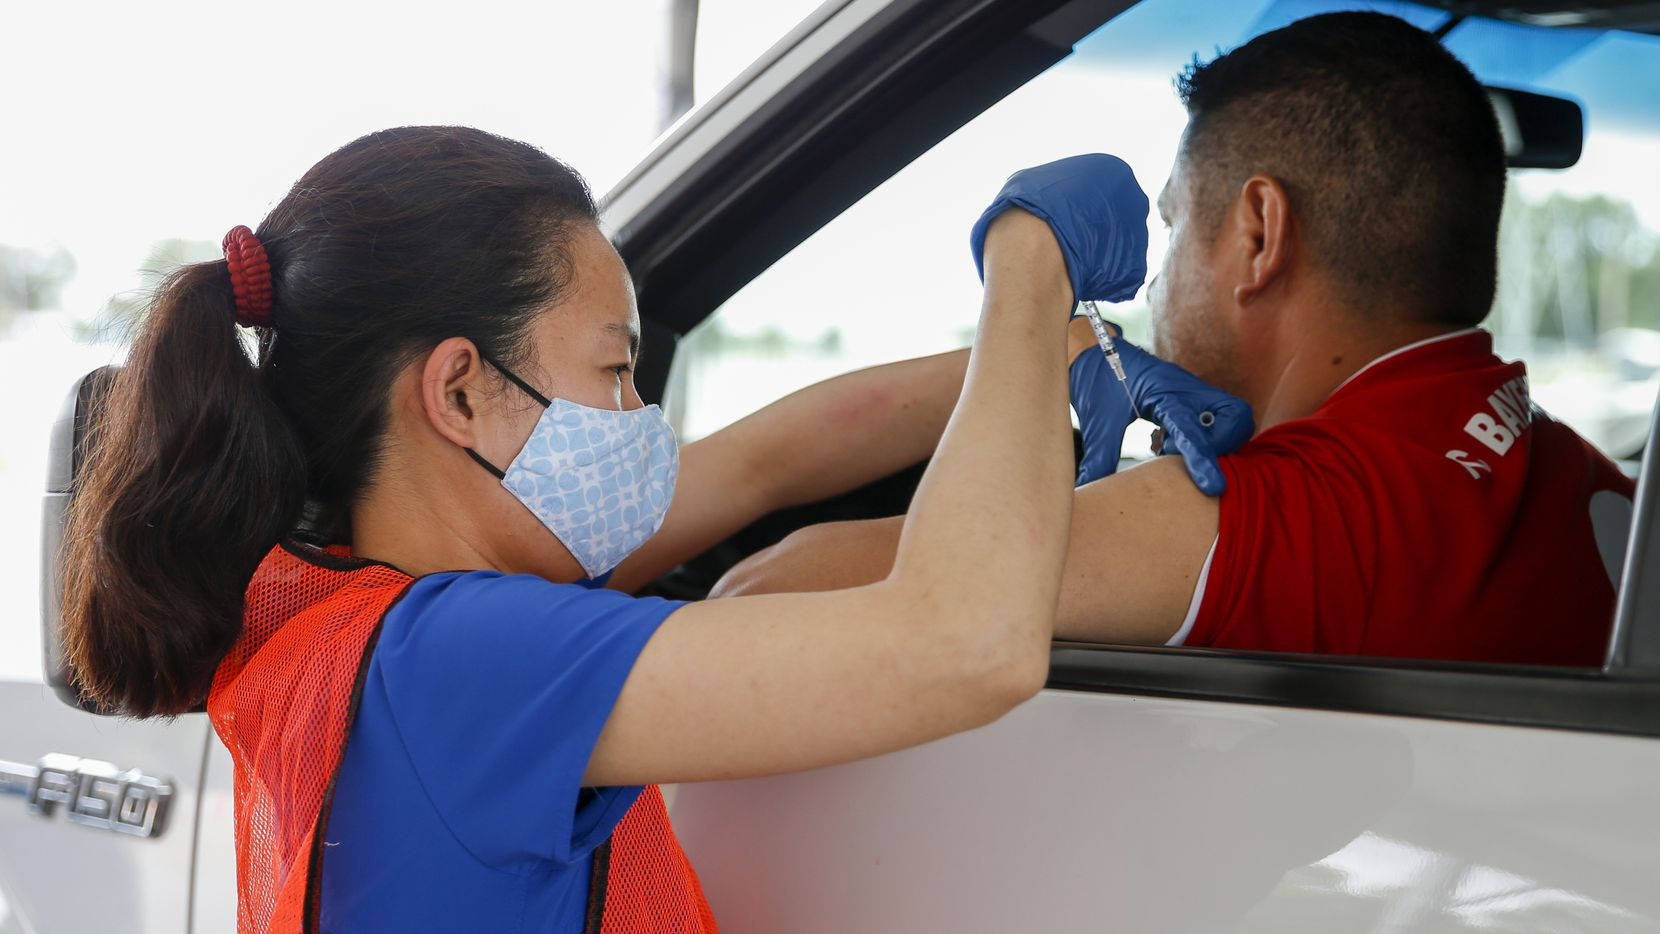 Registered nurse Christine Atayde administers a dose of the COVID-19 vaccine during the last day of vaccinations at the drive-thru Fair Park site on Saturday, July 17, 2021, in Dallas. More than 12,000 doses could be administered at the site during its peak. (Elias Valverde II/The Dallas Morning News)